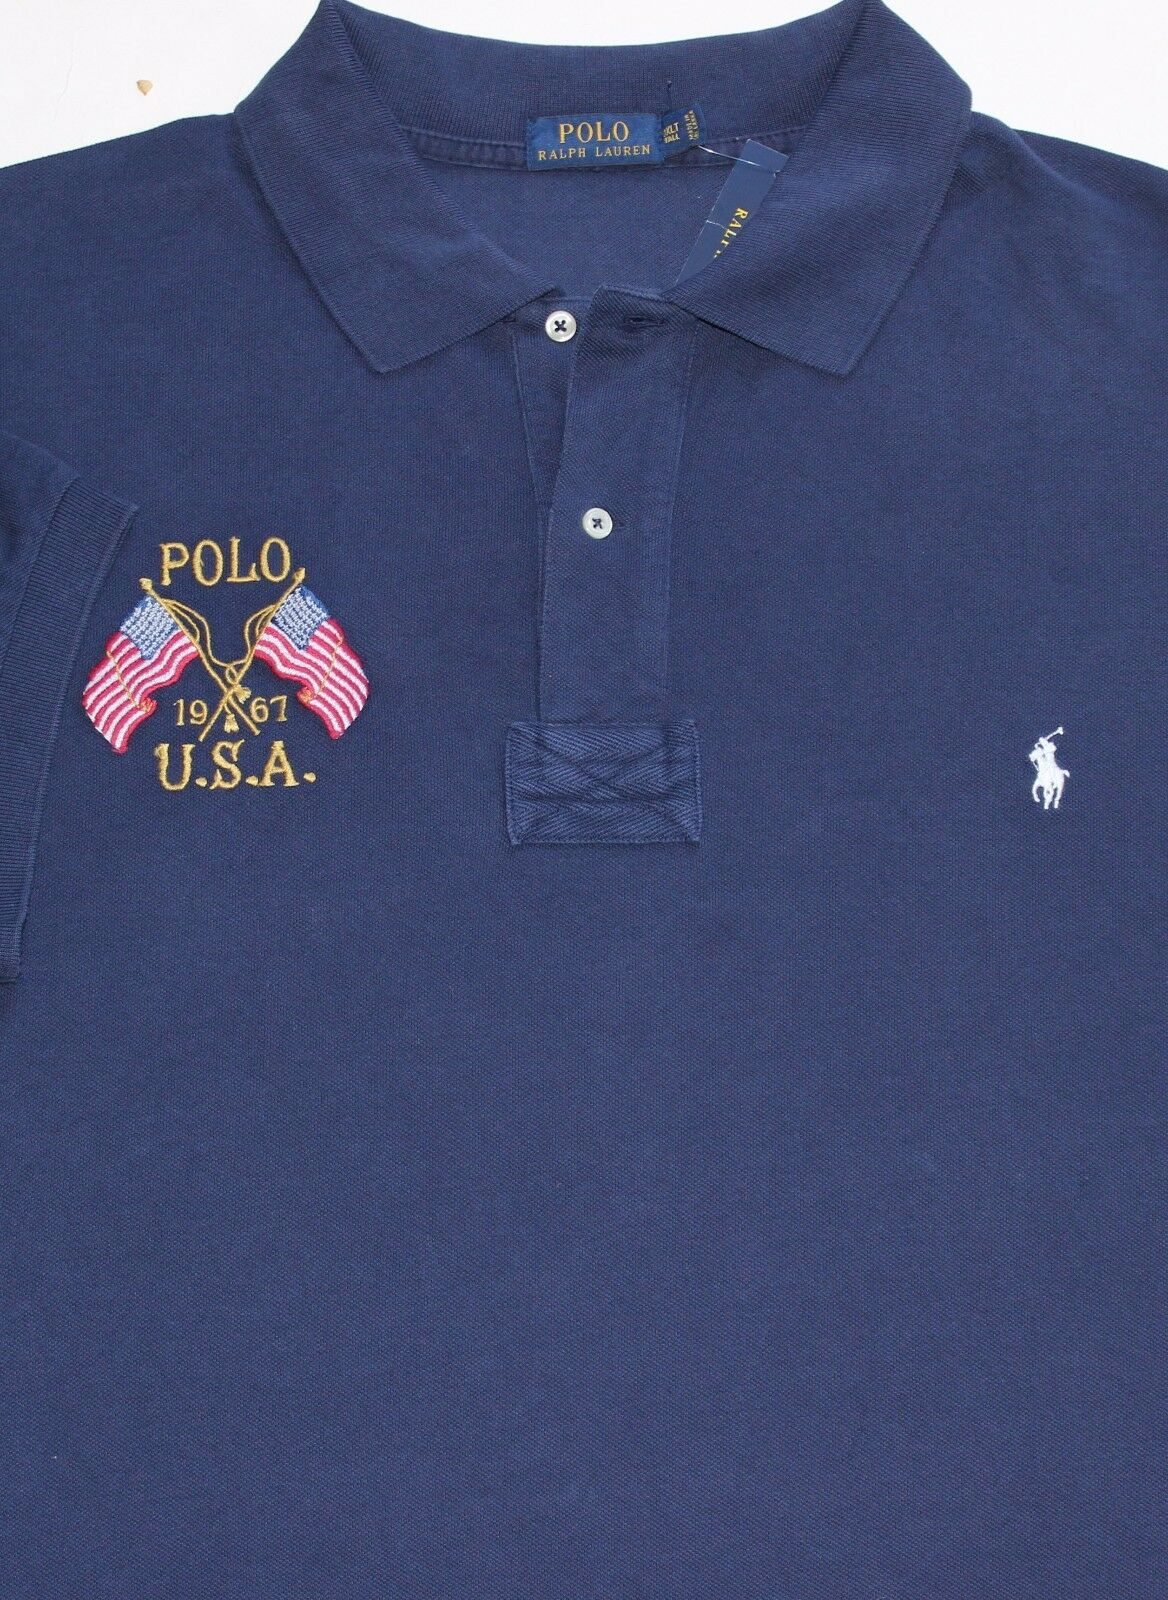 New Polo Ralph Lauren bluee Heritage Dual Flag Cotton Mesh Polo   3XLT